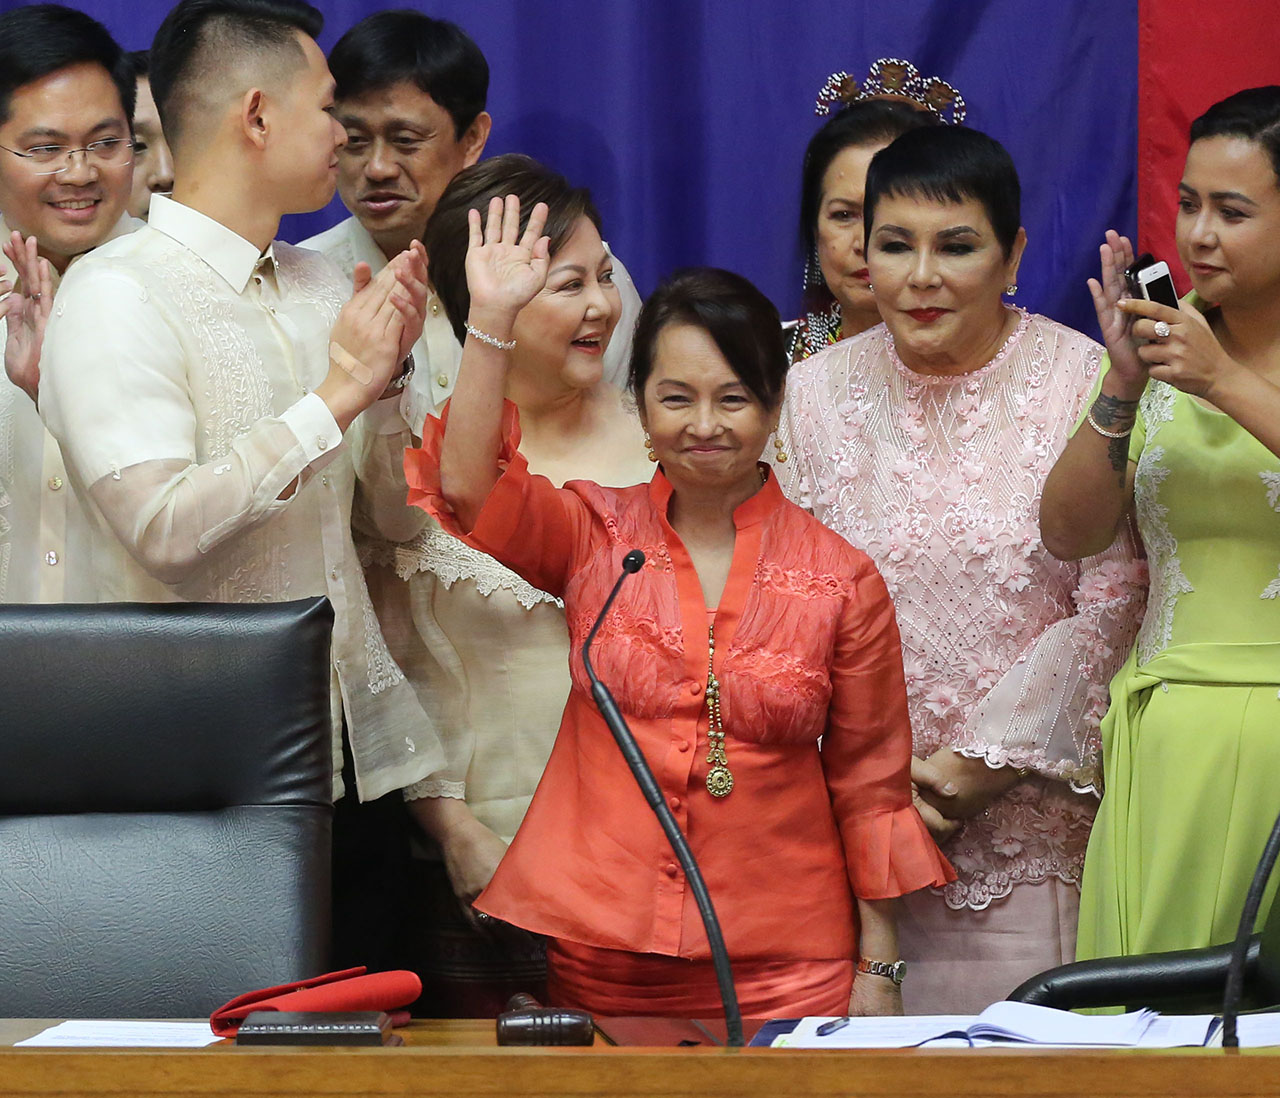 NEW SPEAKER. Pampanga Representative Gloria Macapagal Arroyo waves from the rostrum before the start of the 3rd State of the Nation Address of President Duterte at the House of Representatives. Photo by Mary Grace dela Serna/Rappler